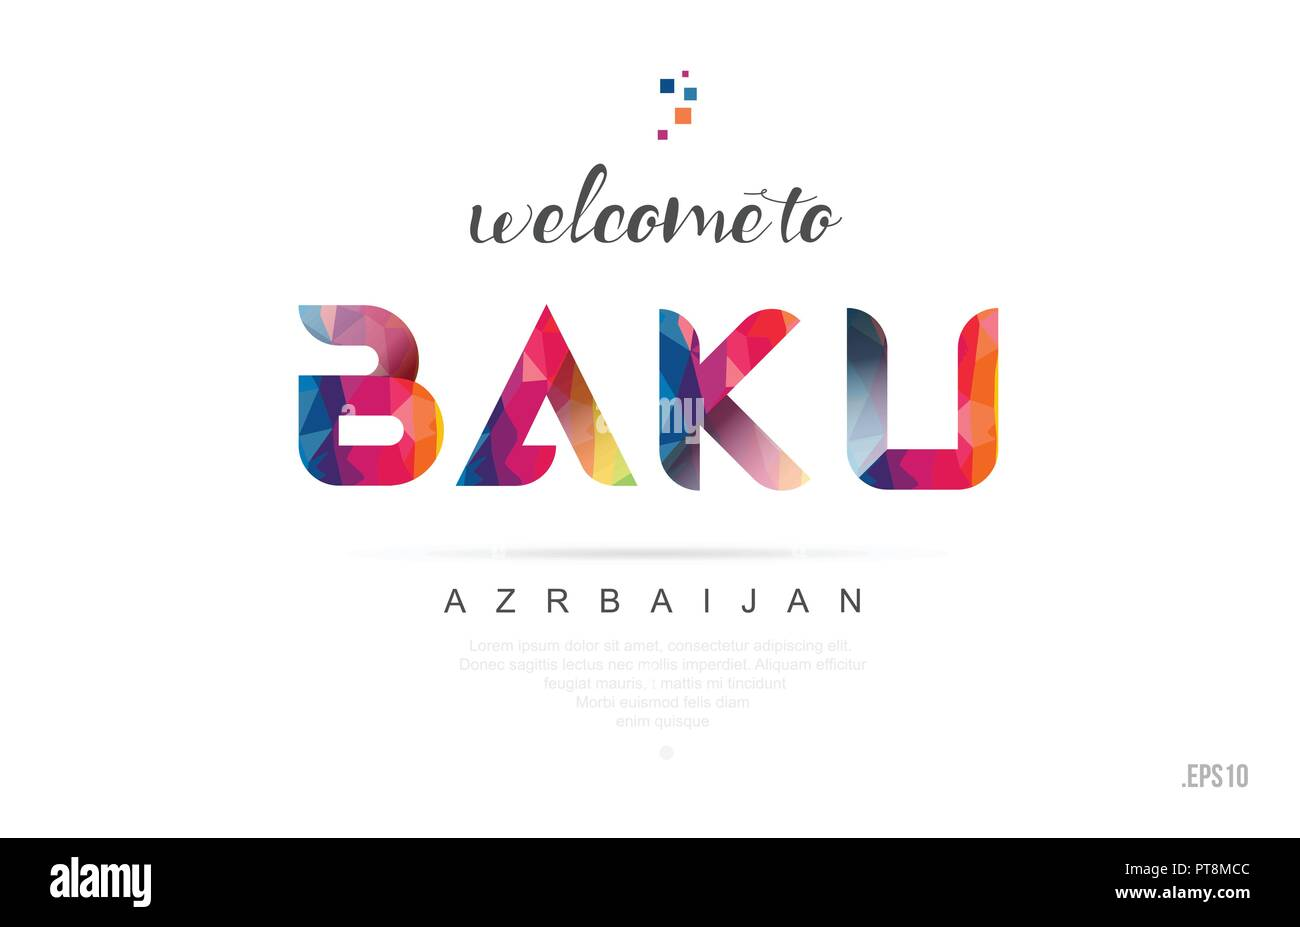 Welcome to baku azerbaijan card and letter design in colorful rainbow color and typographic icon design - Stock Vector